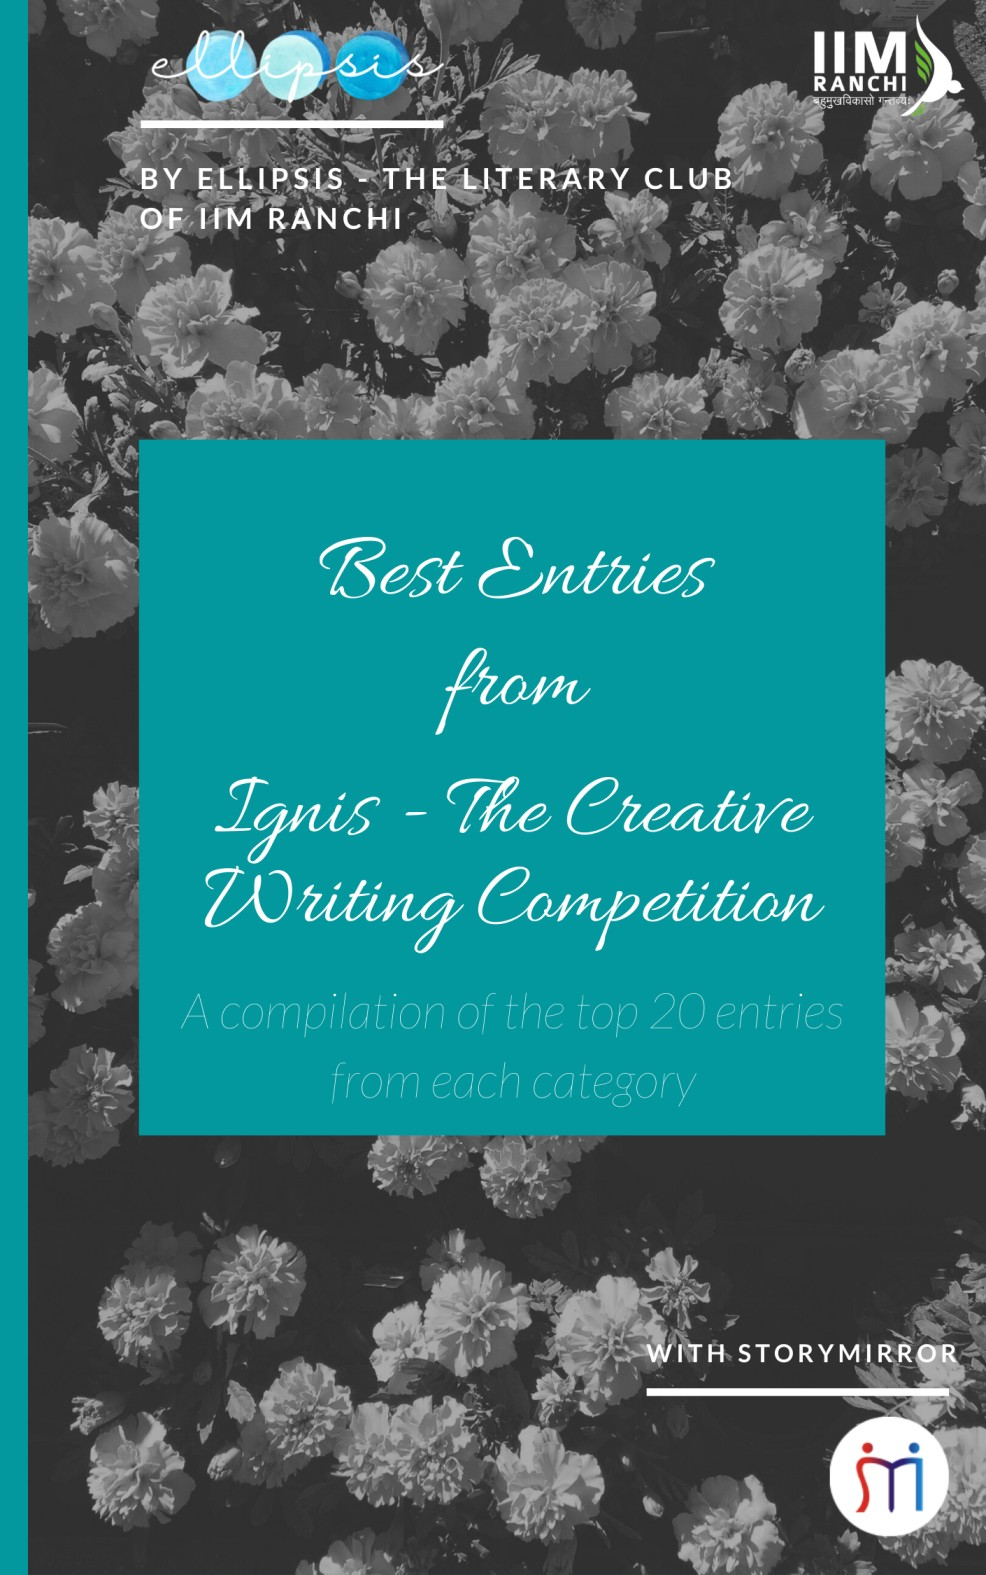 Ignis - The Creative Writing Competition